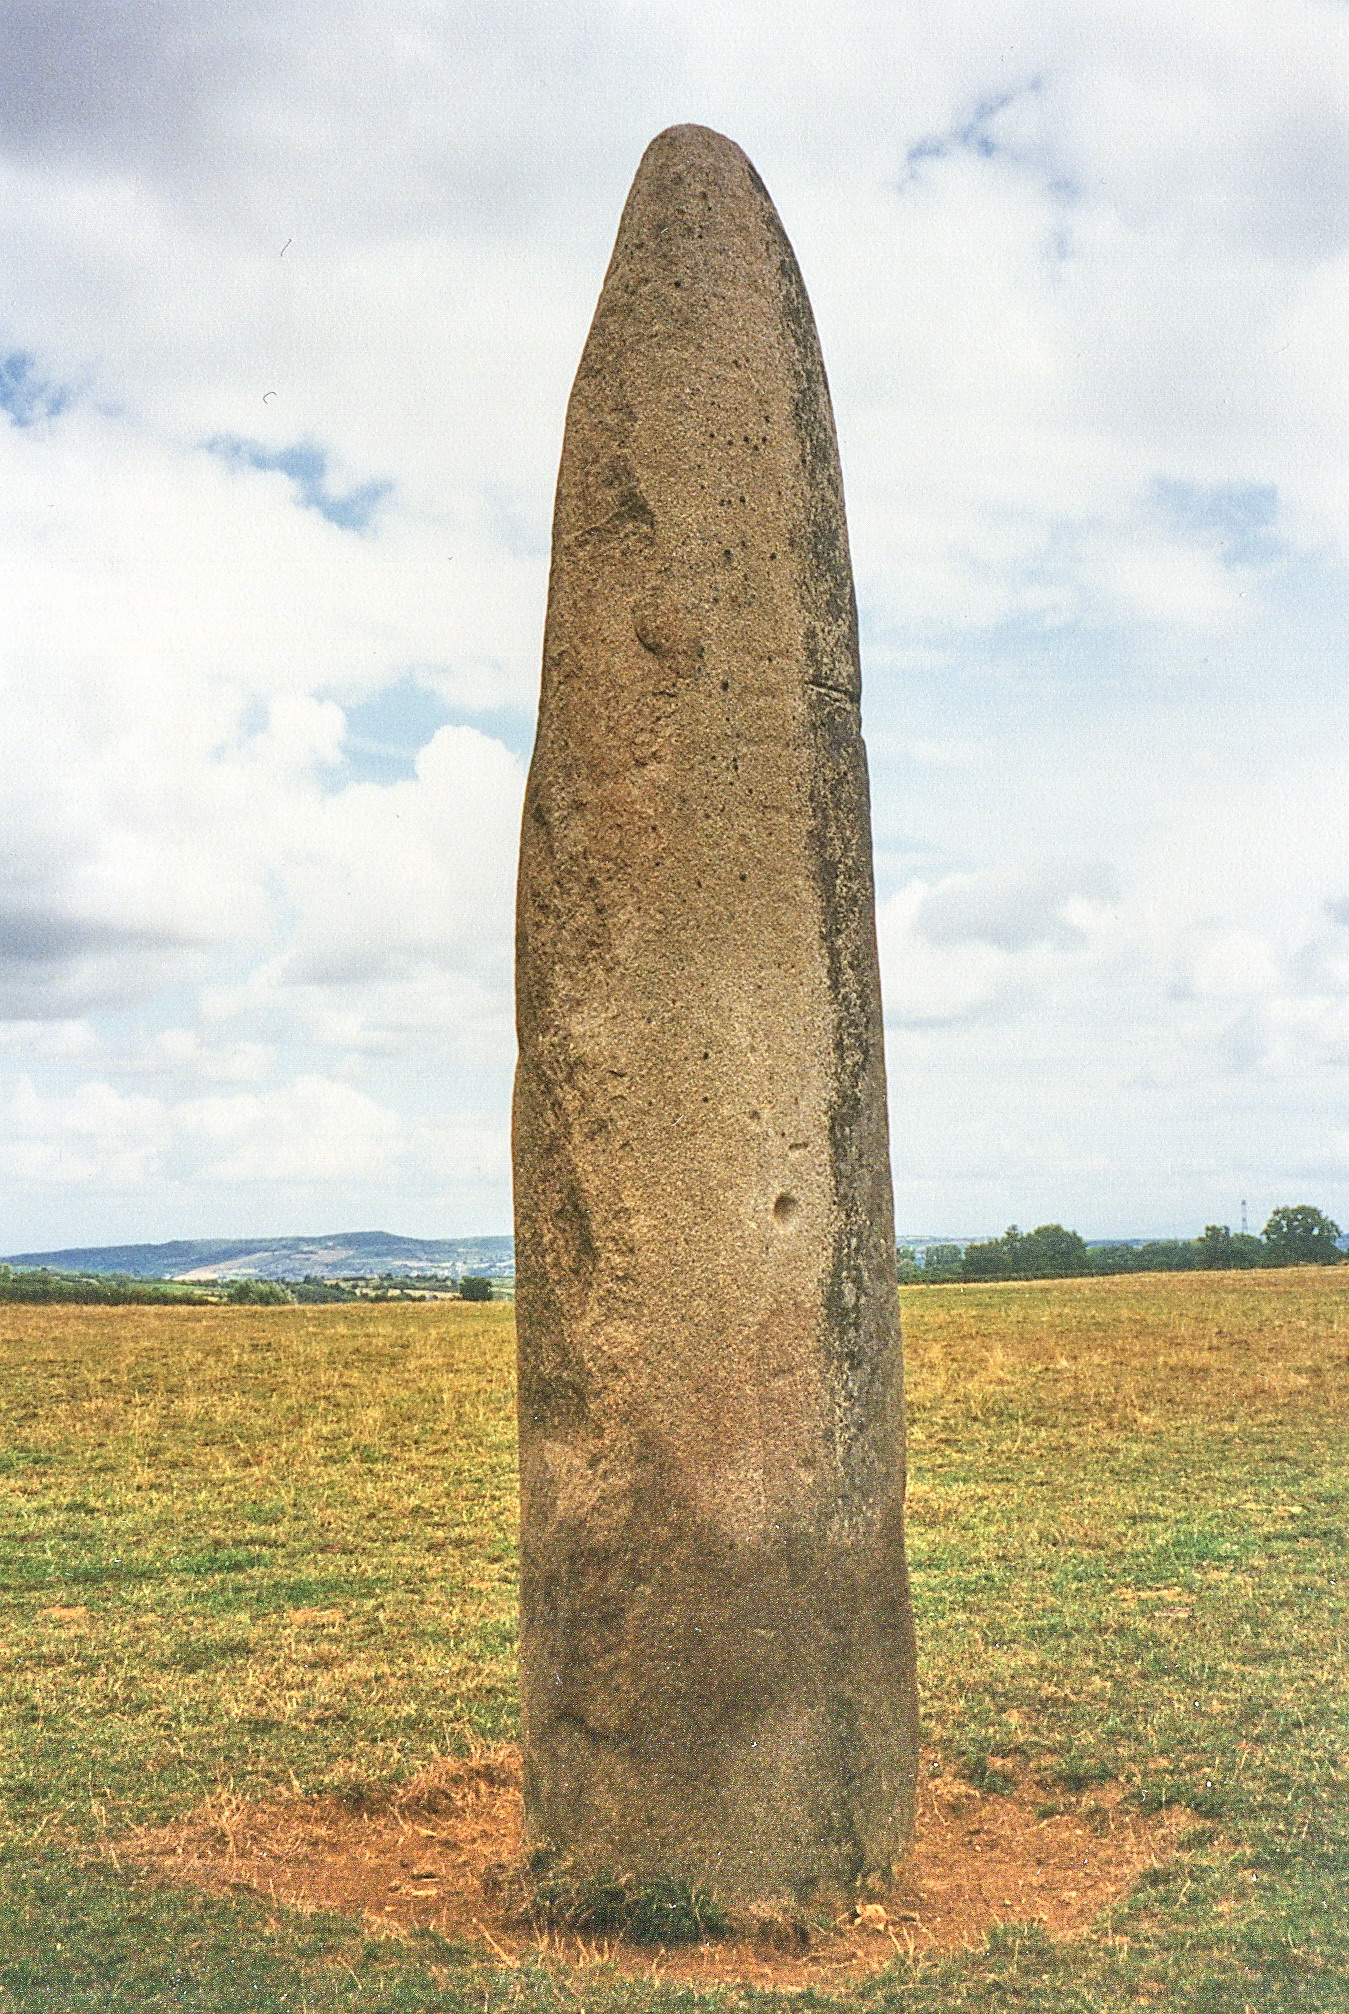 File:Bourgogne, Menhir, Couches (menhirs d'Epoigny), 25.08